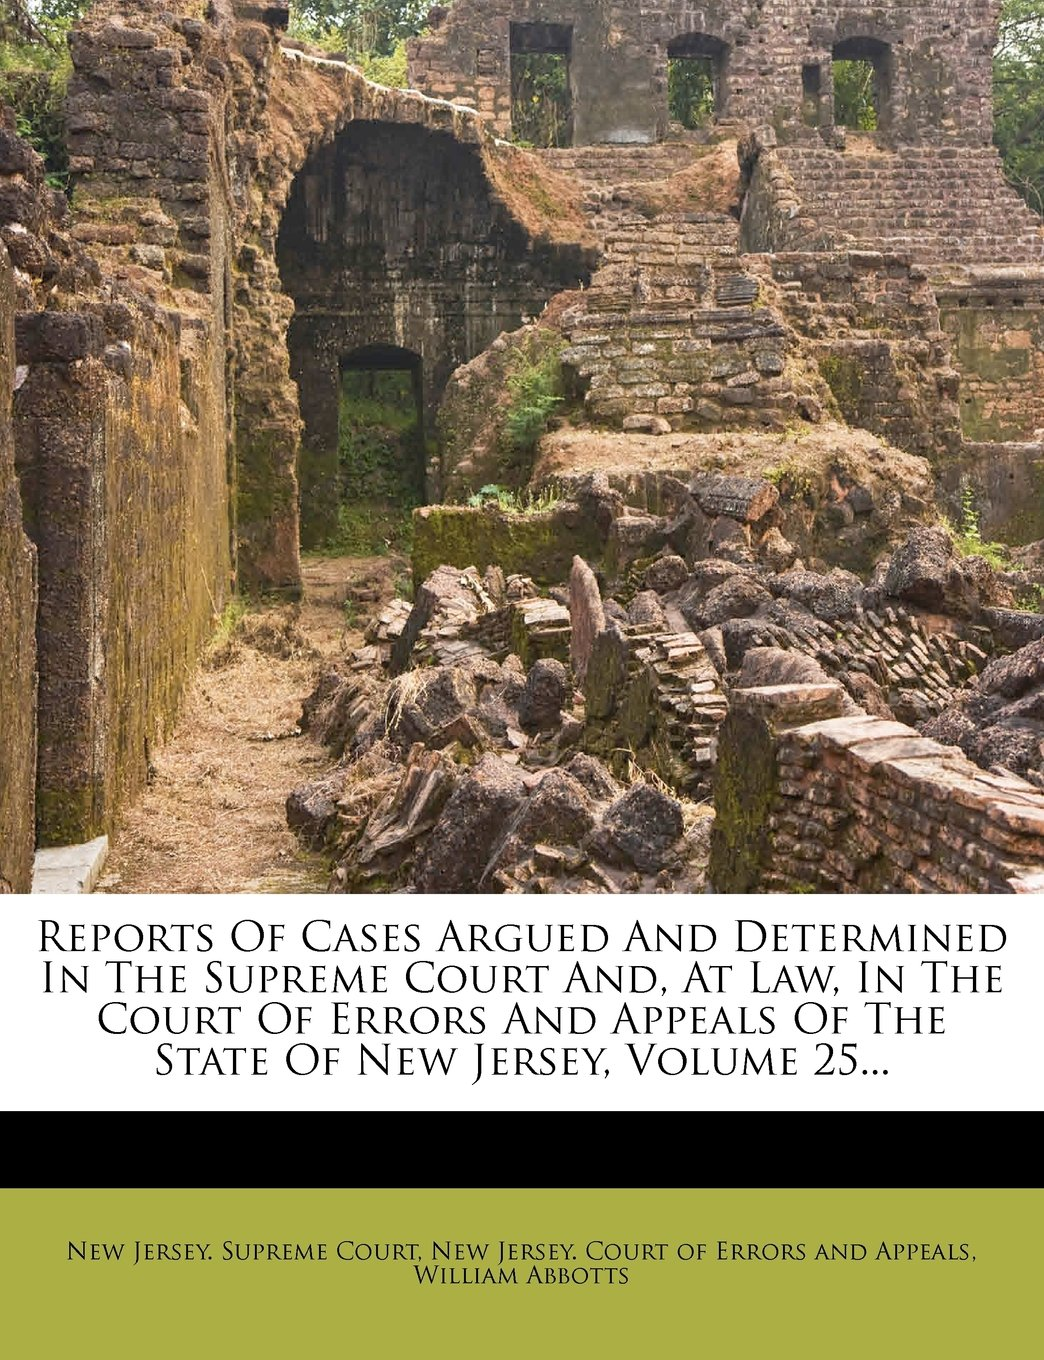 Read Online Reports Of Cases Argued And Determined In The Supreme Court And, At Law, In The Court Of Errors And Appeals Of The State Of New Jersey, Volume 25... PDF